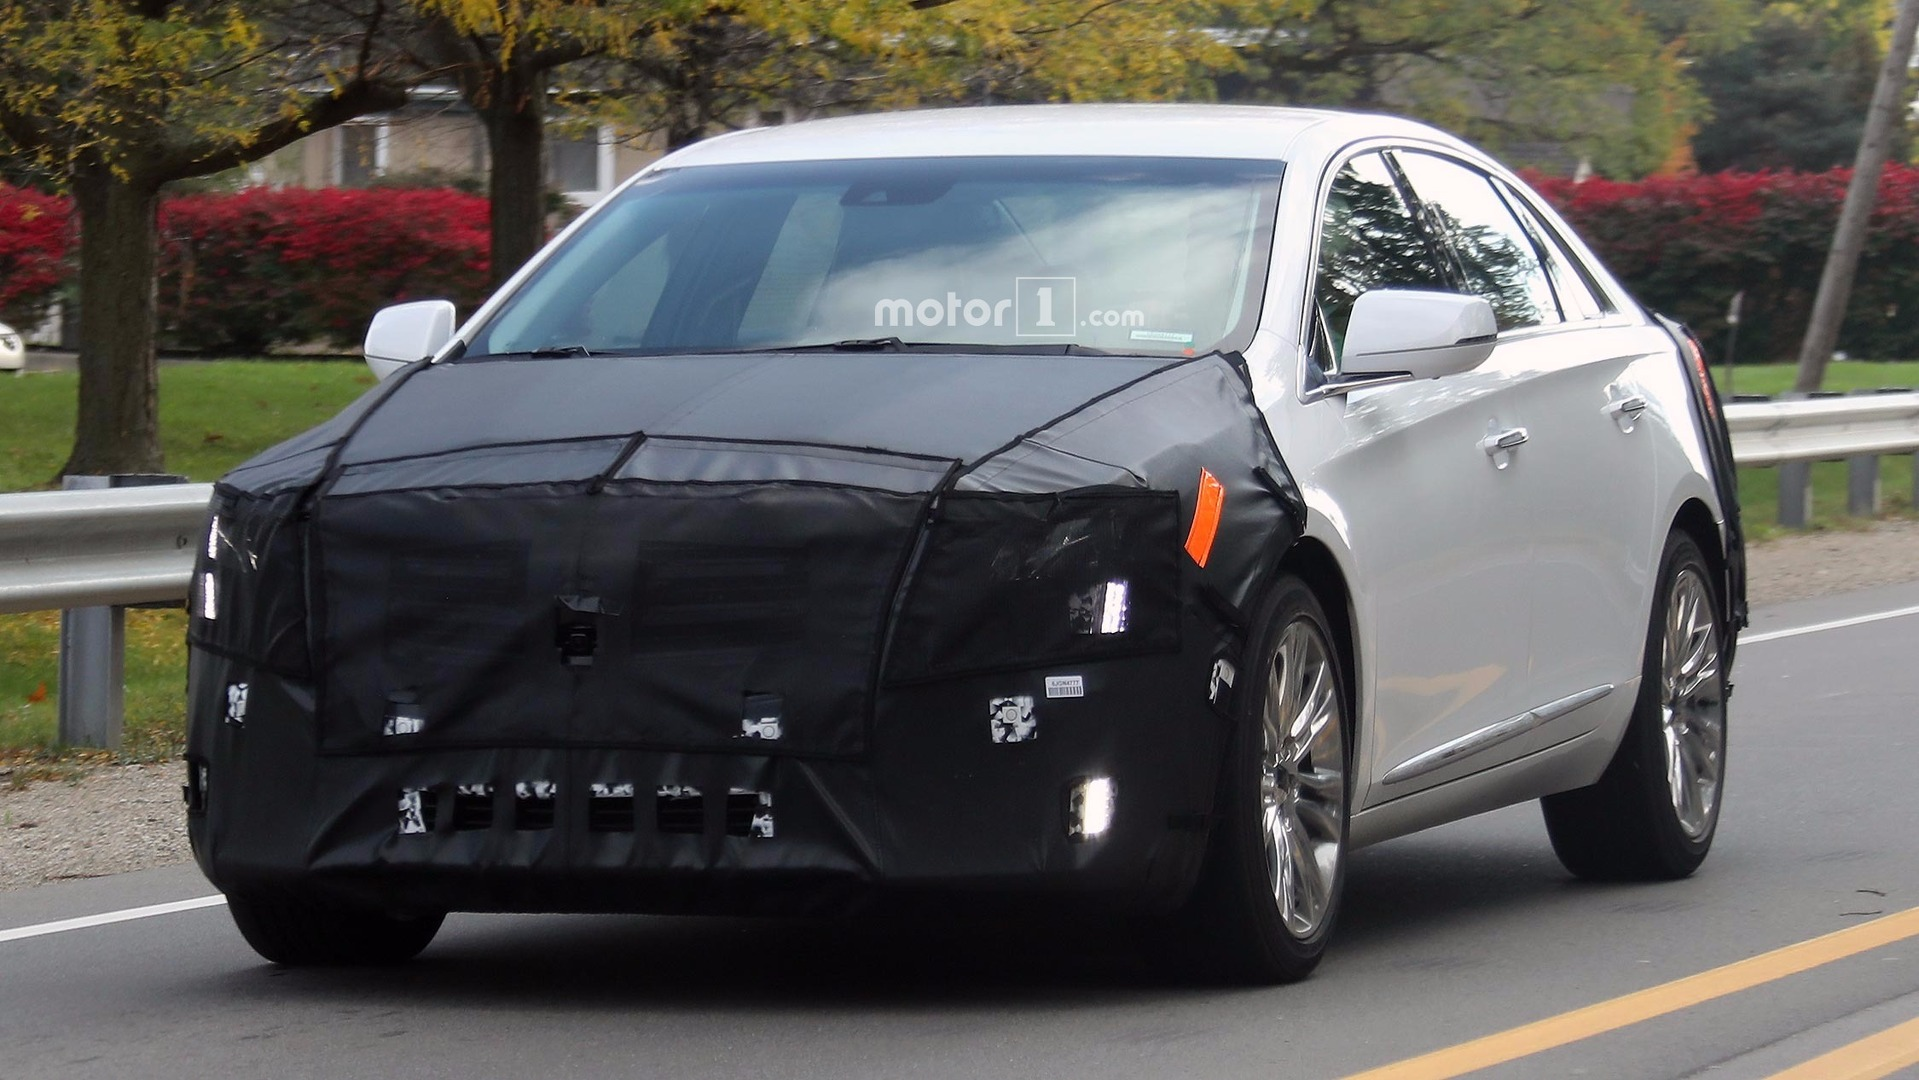 73 A Spy Shots Cadillac Xt5 Prices